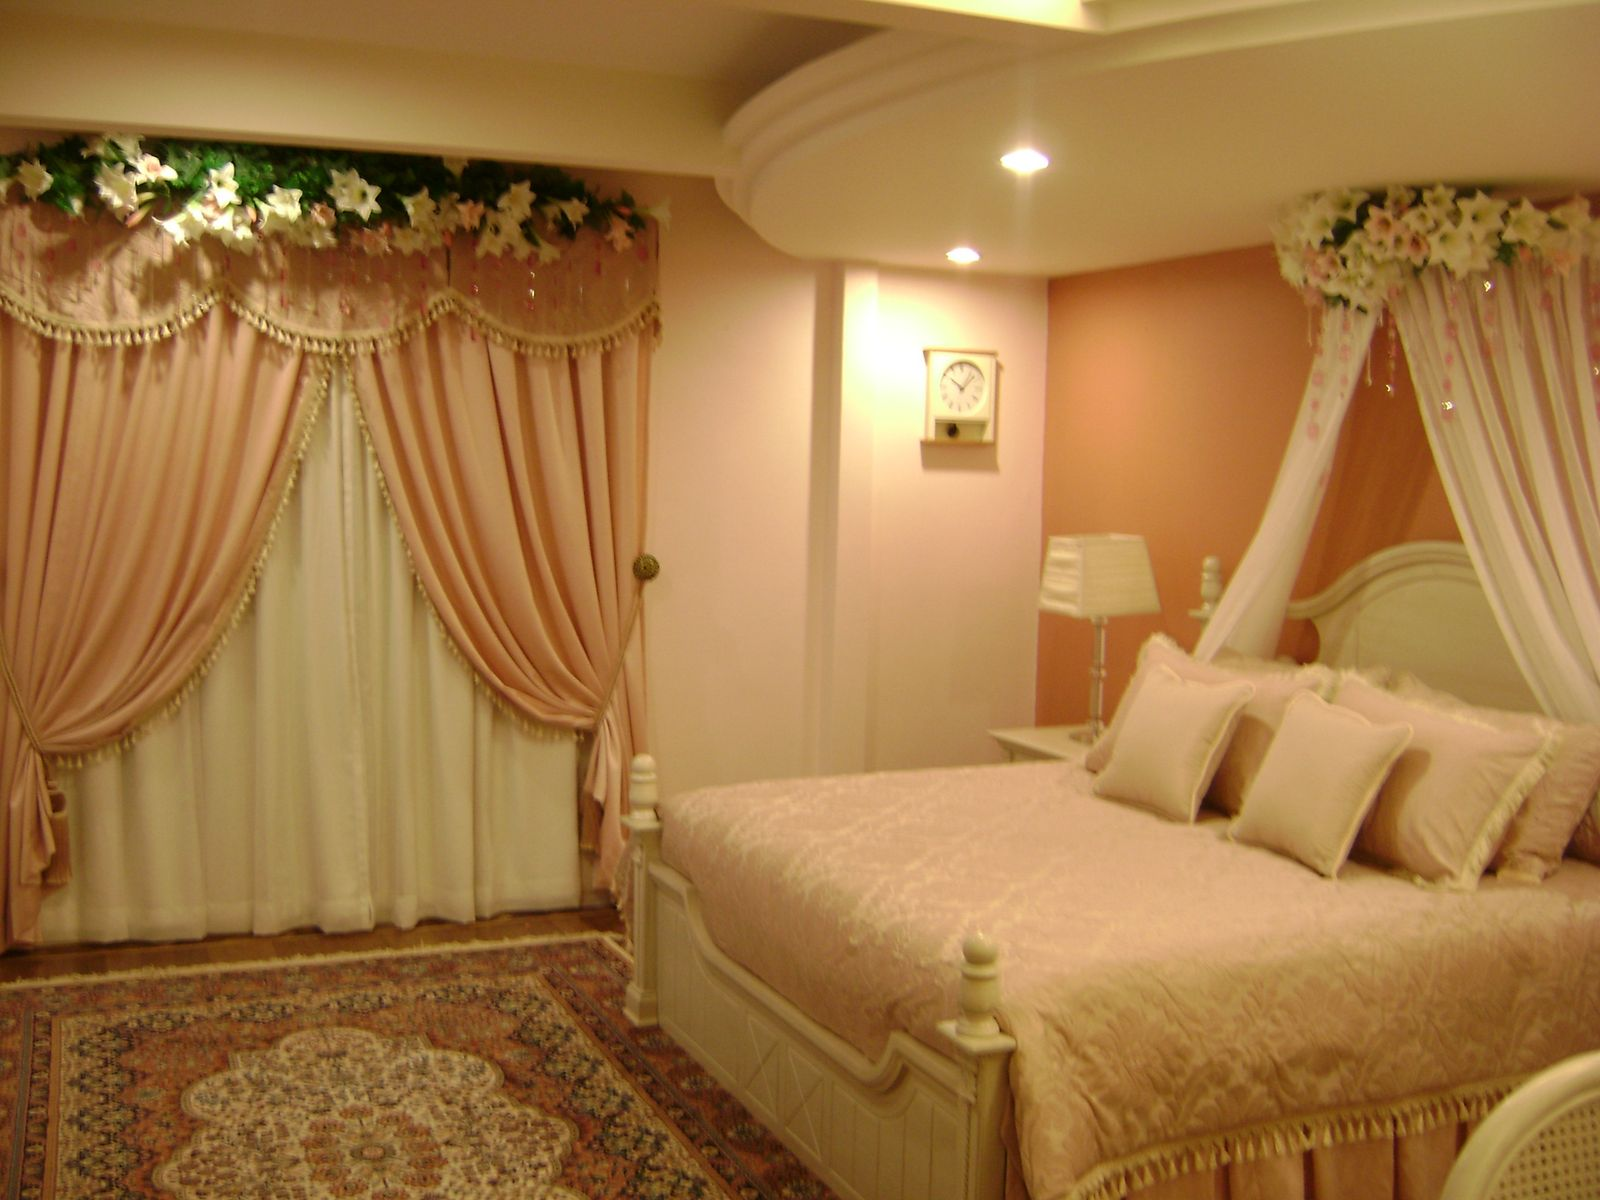 Girlsvilla wedding room decoration for Asian wedding bedroom decoration